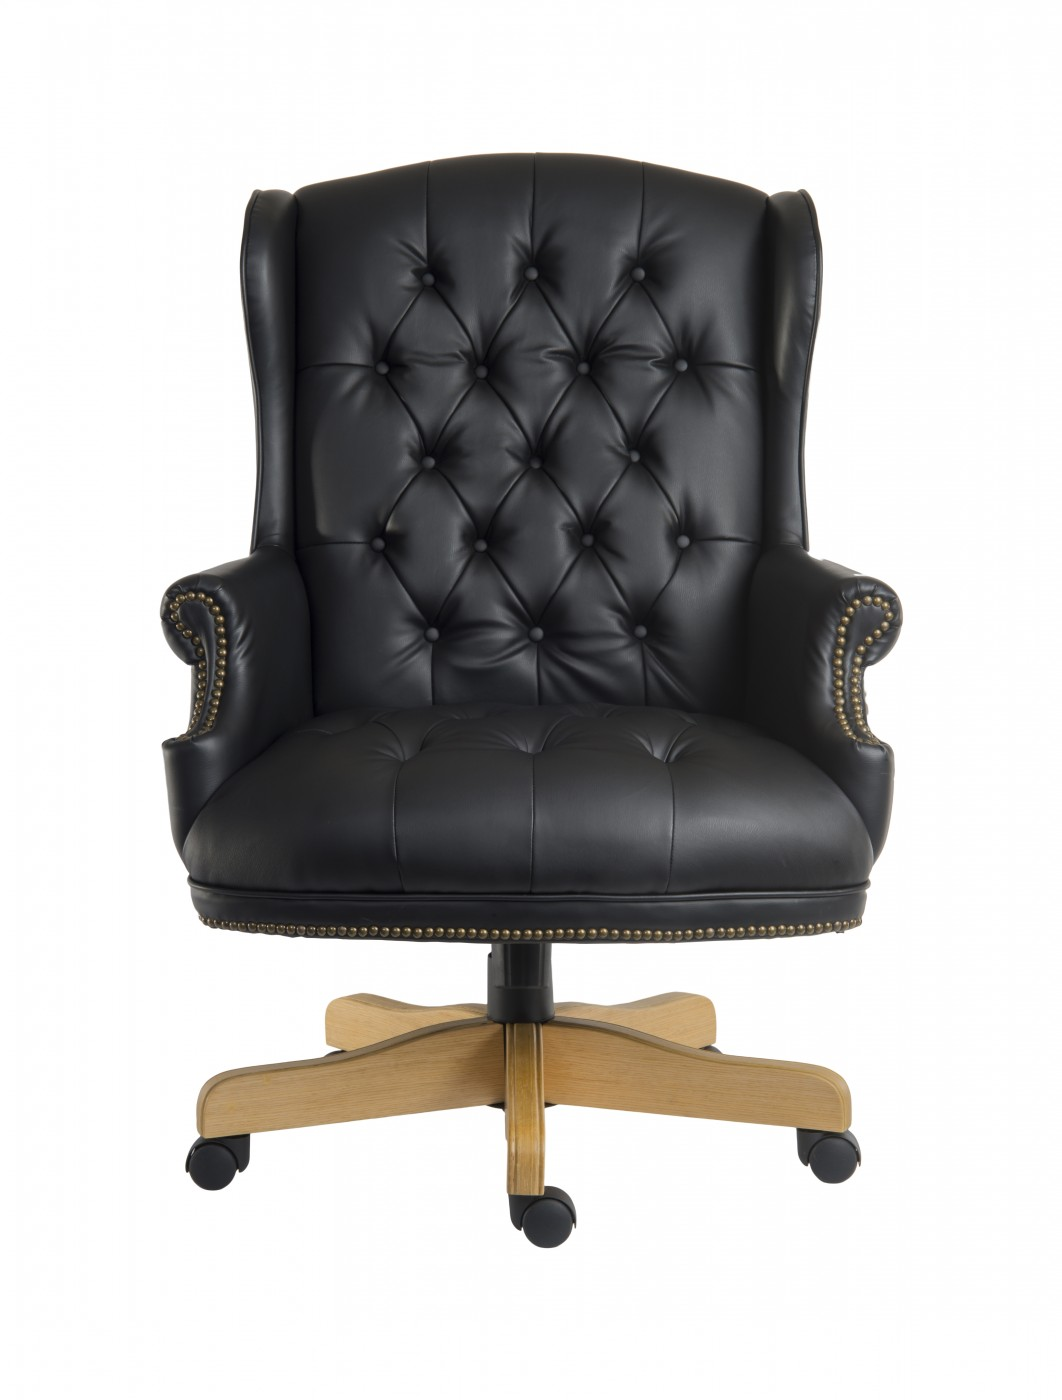 how much does a gaming chair weight cheap covers to buy uk chairman noir leather executive b6927 121 office